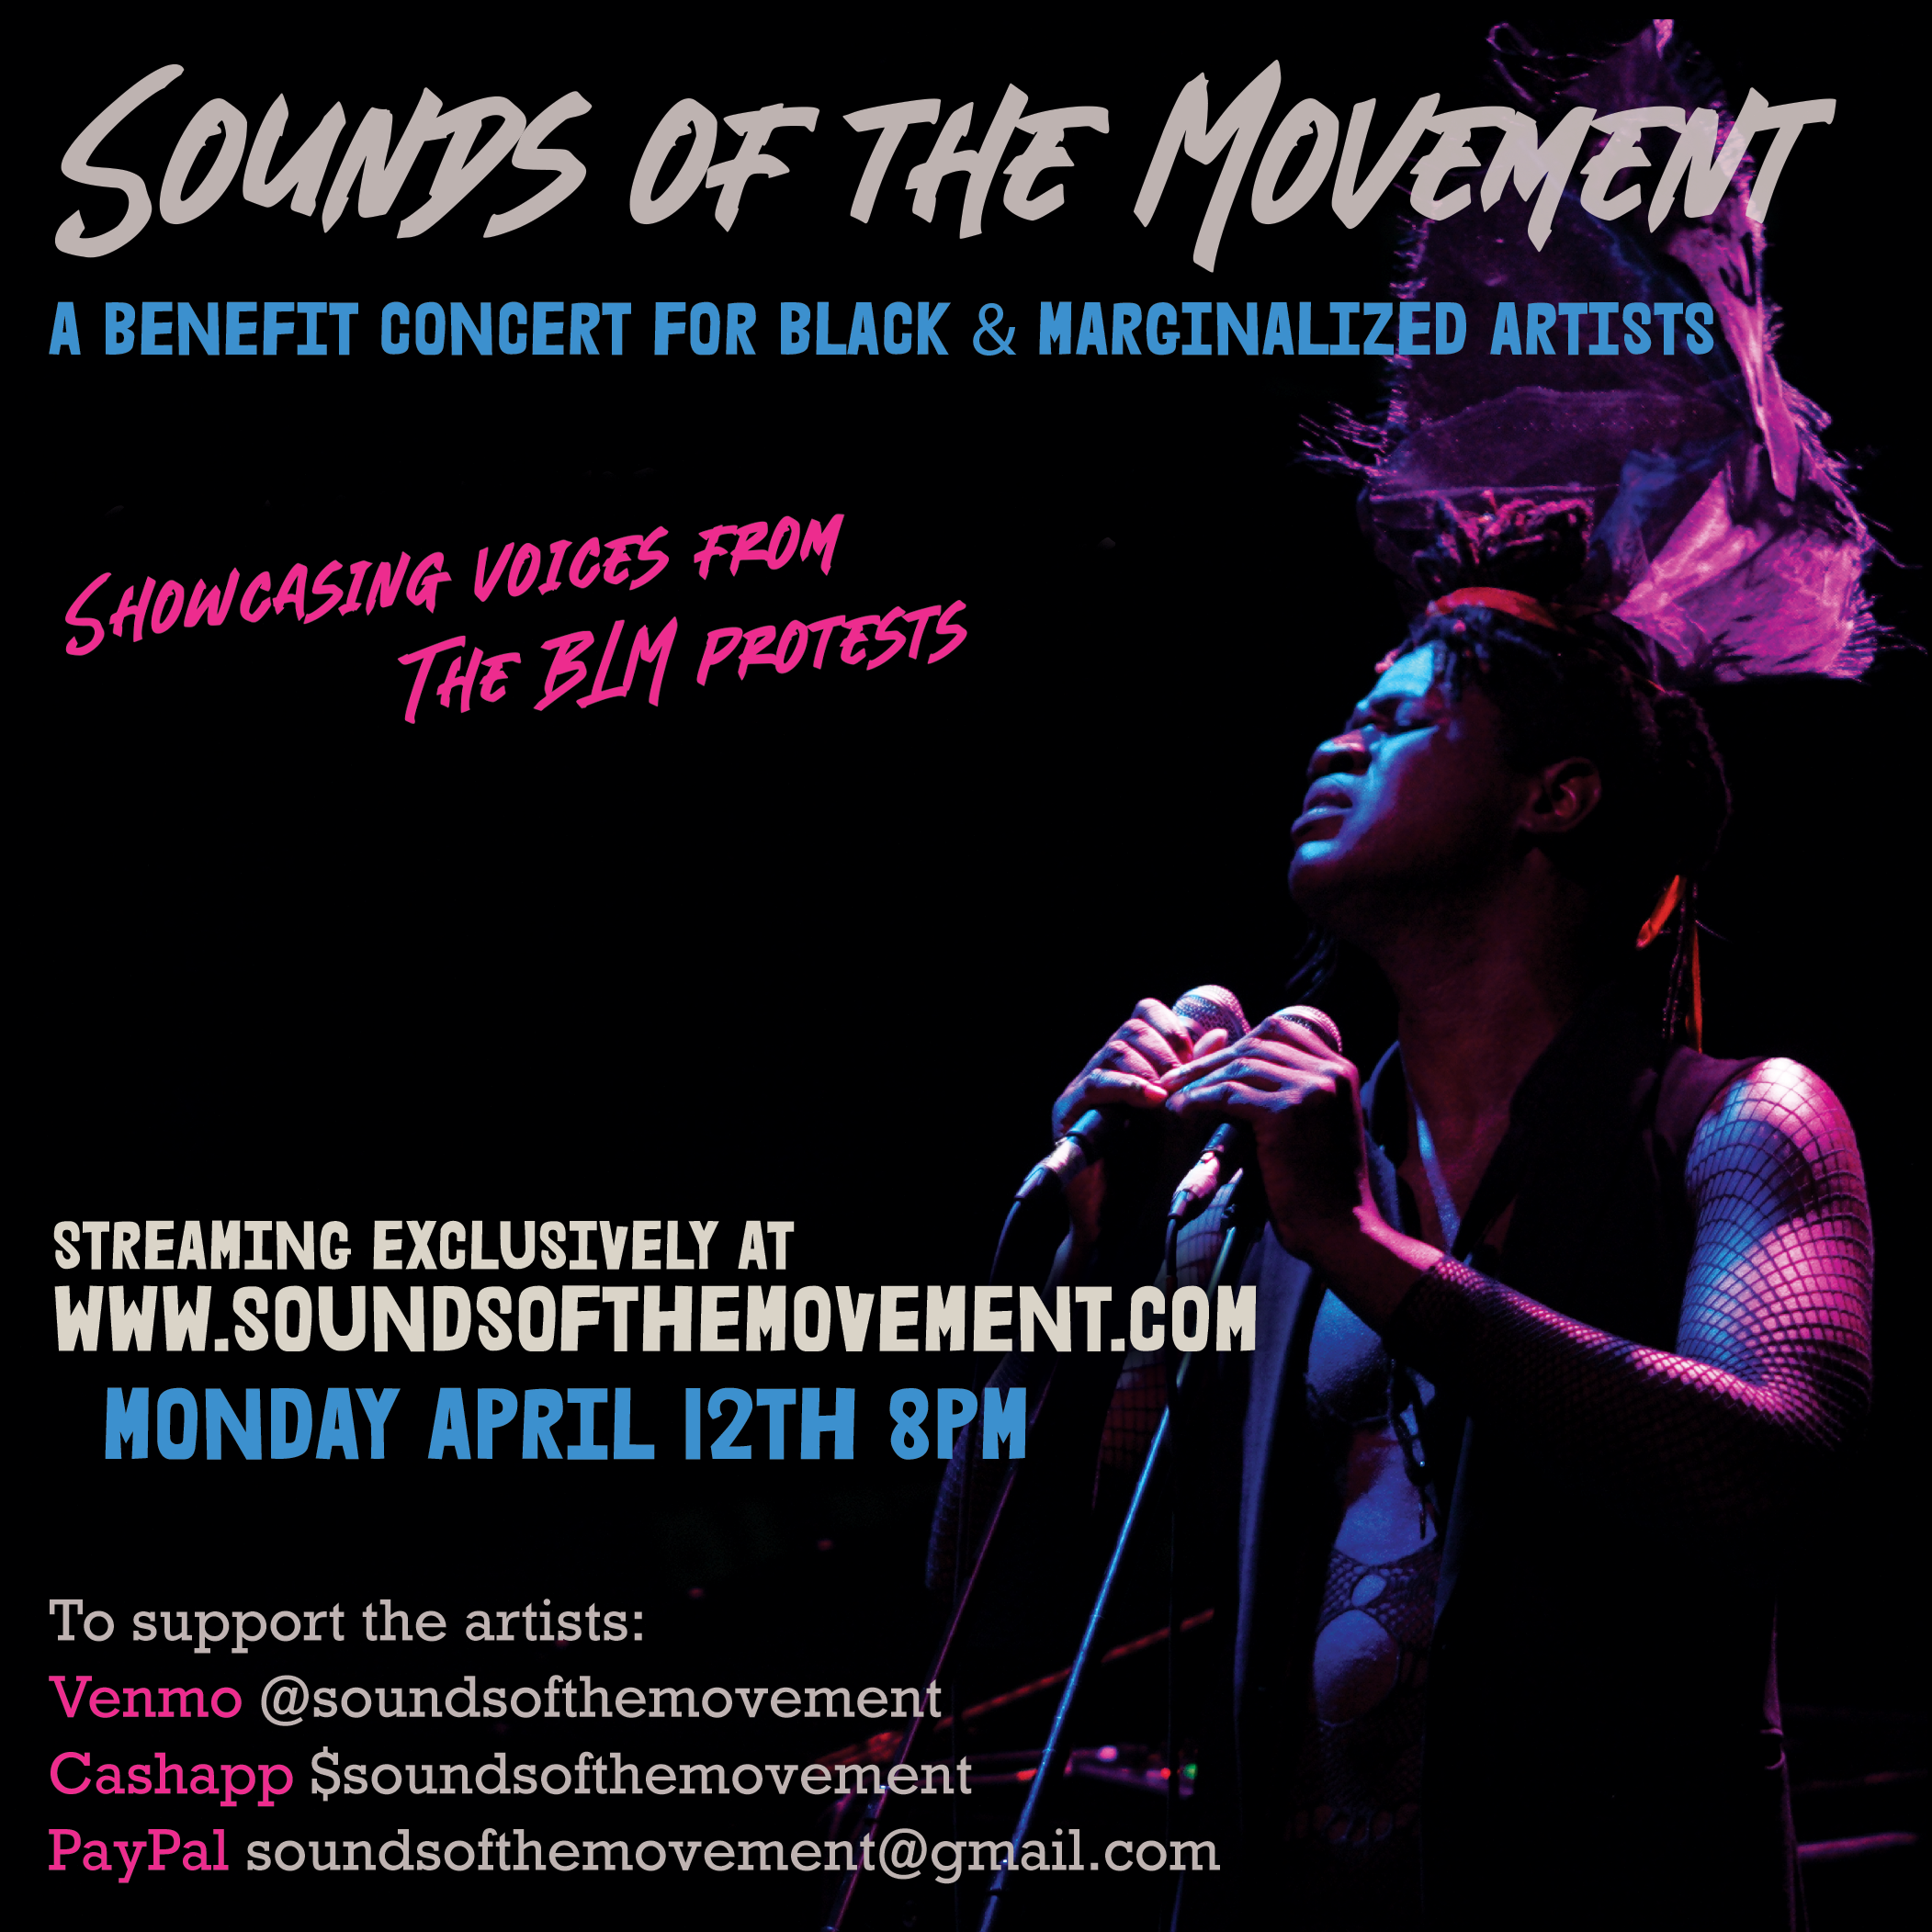 Sounds of the Movement at La MaMa graphic